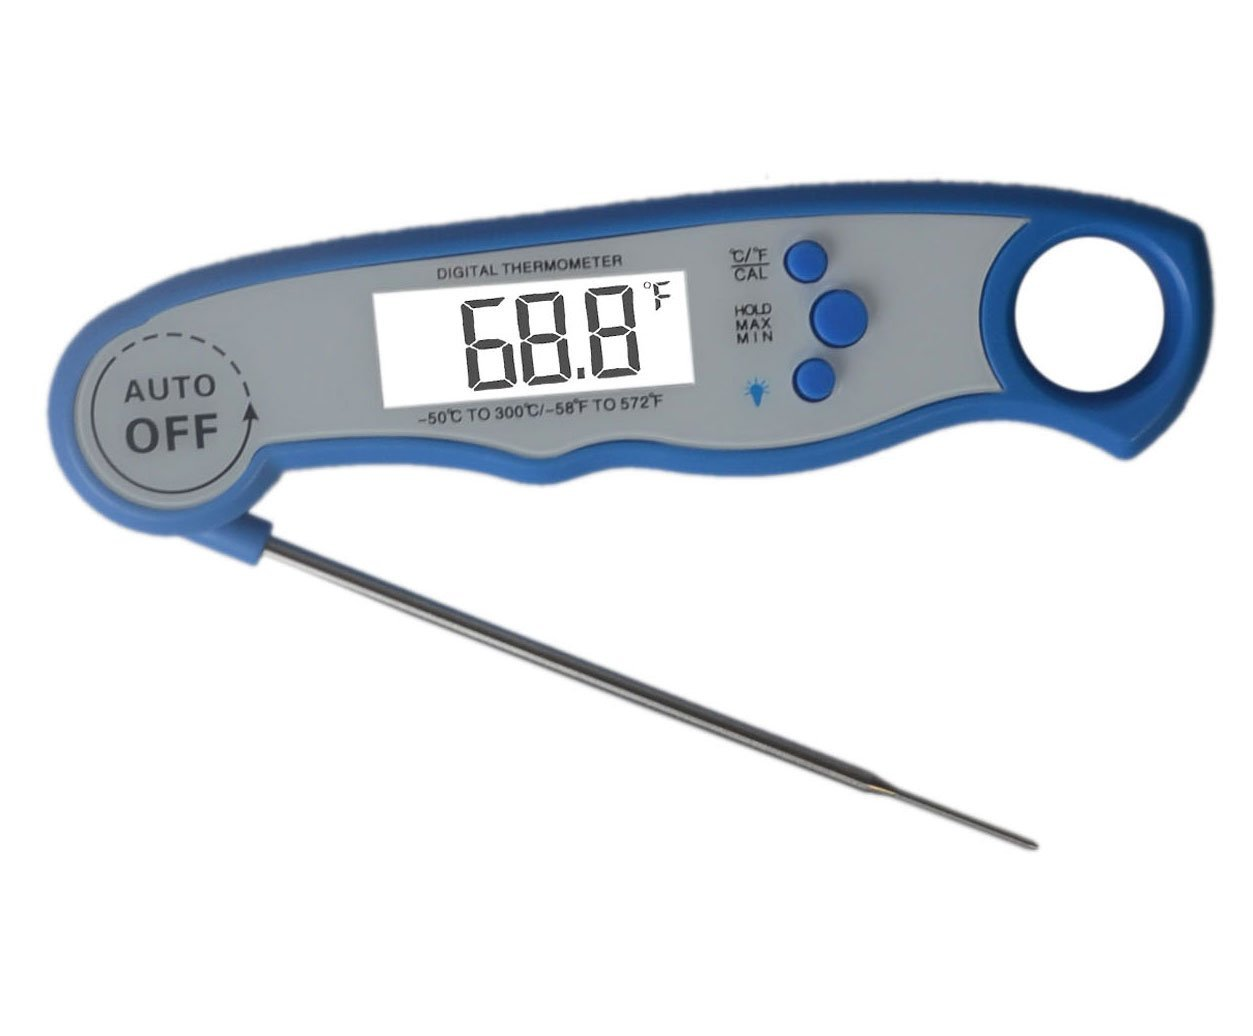 HuiSmart Digital Read Meat Thermometer Waterproof Instant Cooking Thermometer with Calibration and Backlight Functions - Food Thermometer for Kitchen and Outdoor Cooking BBQ,Grill (Blue)